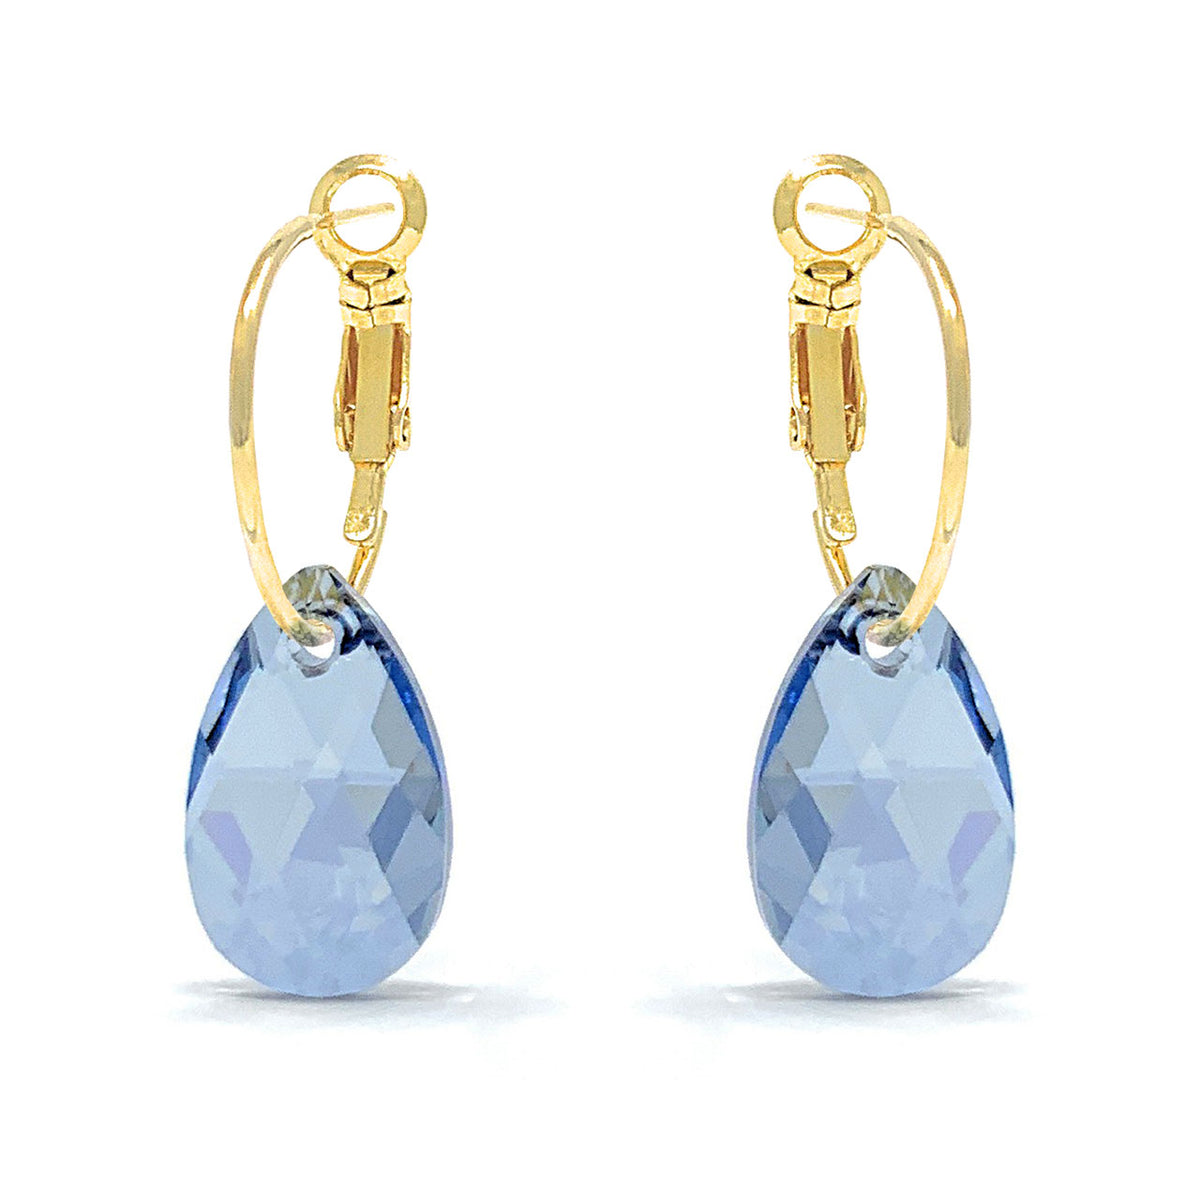 Aurora Small Drop Earrings with Grey Blue Shade Pear Crystals from Swarovski Gold Plated - Ed Heart